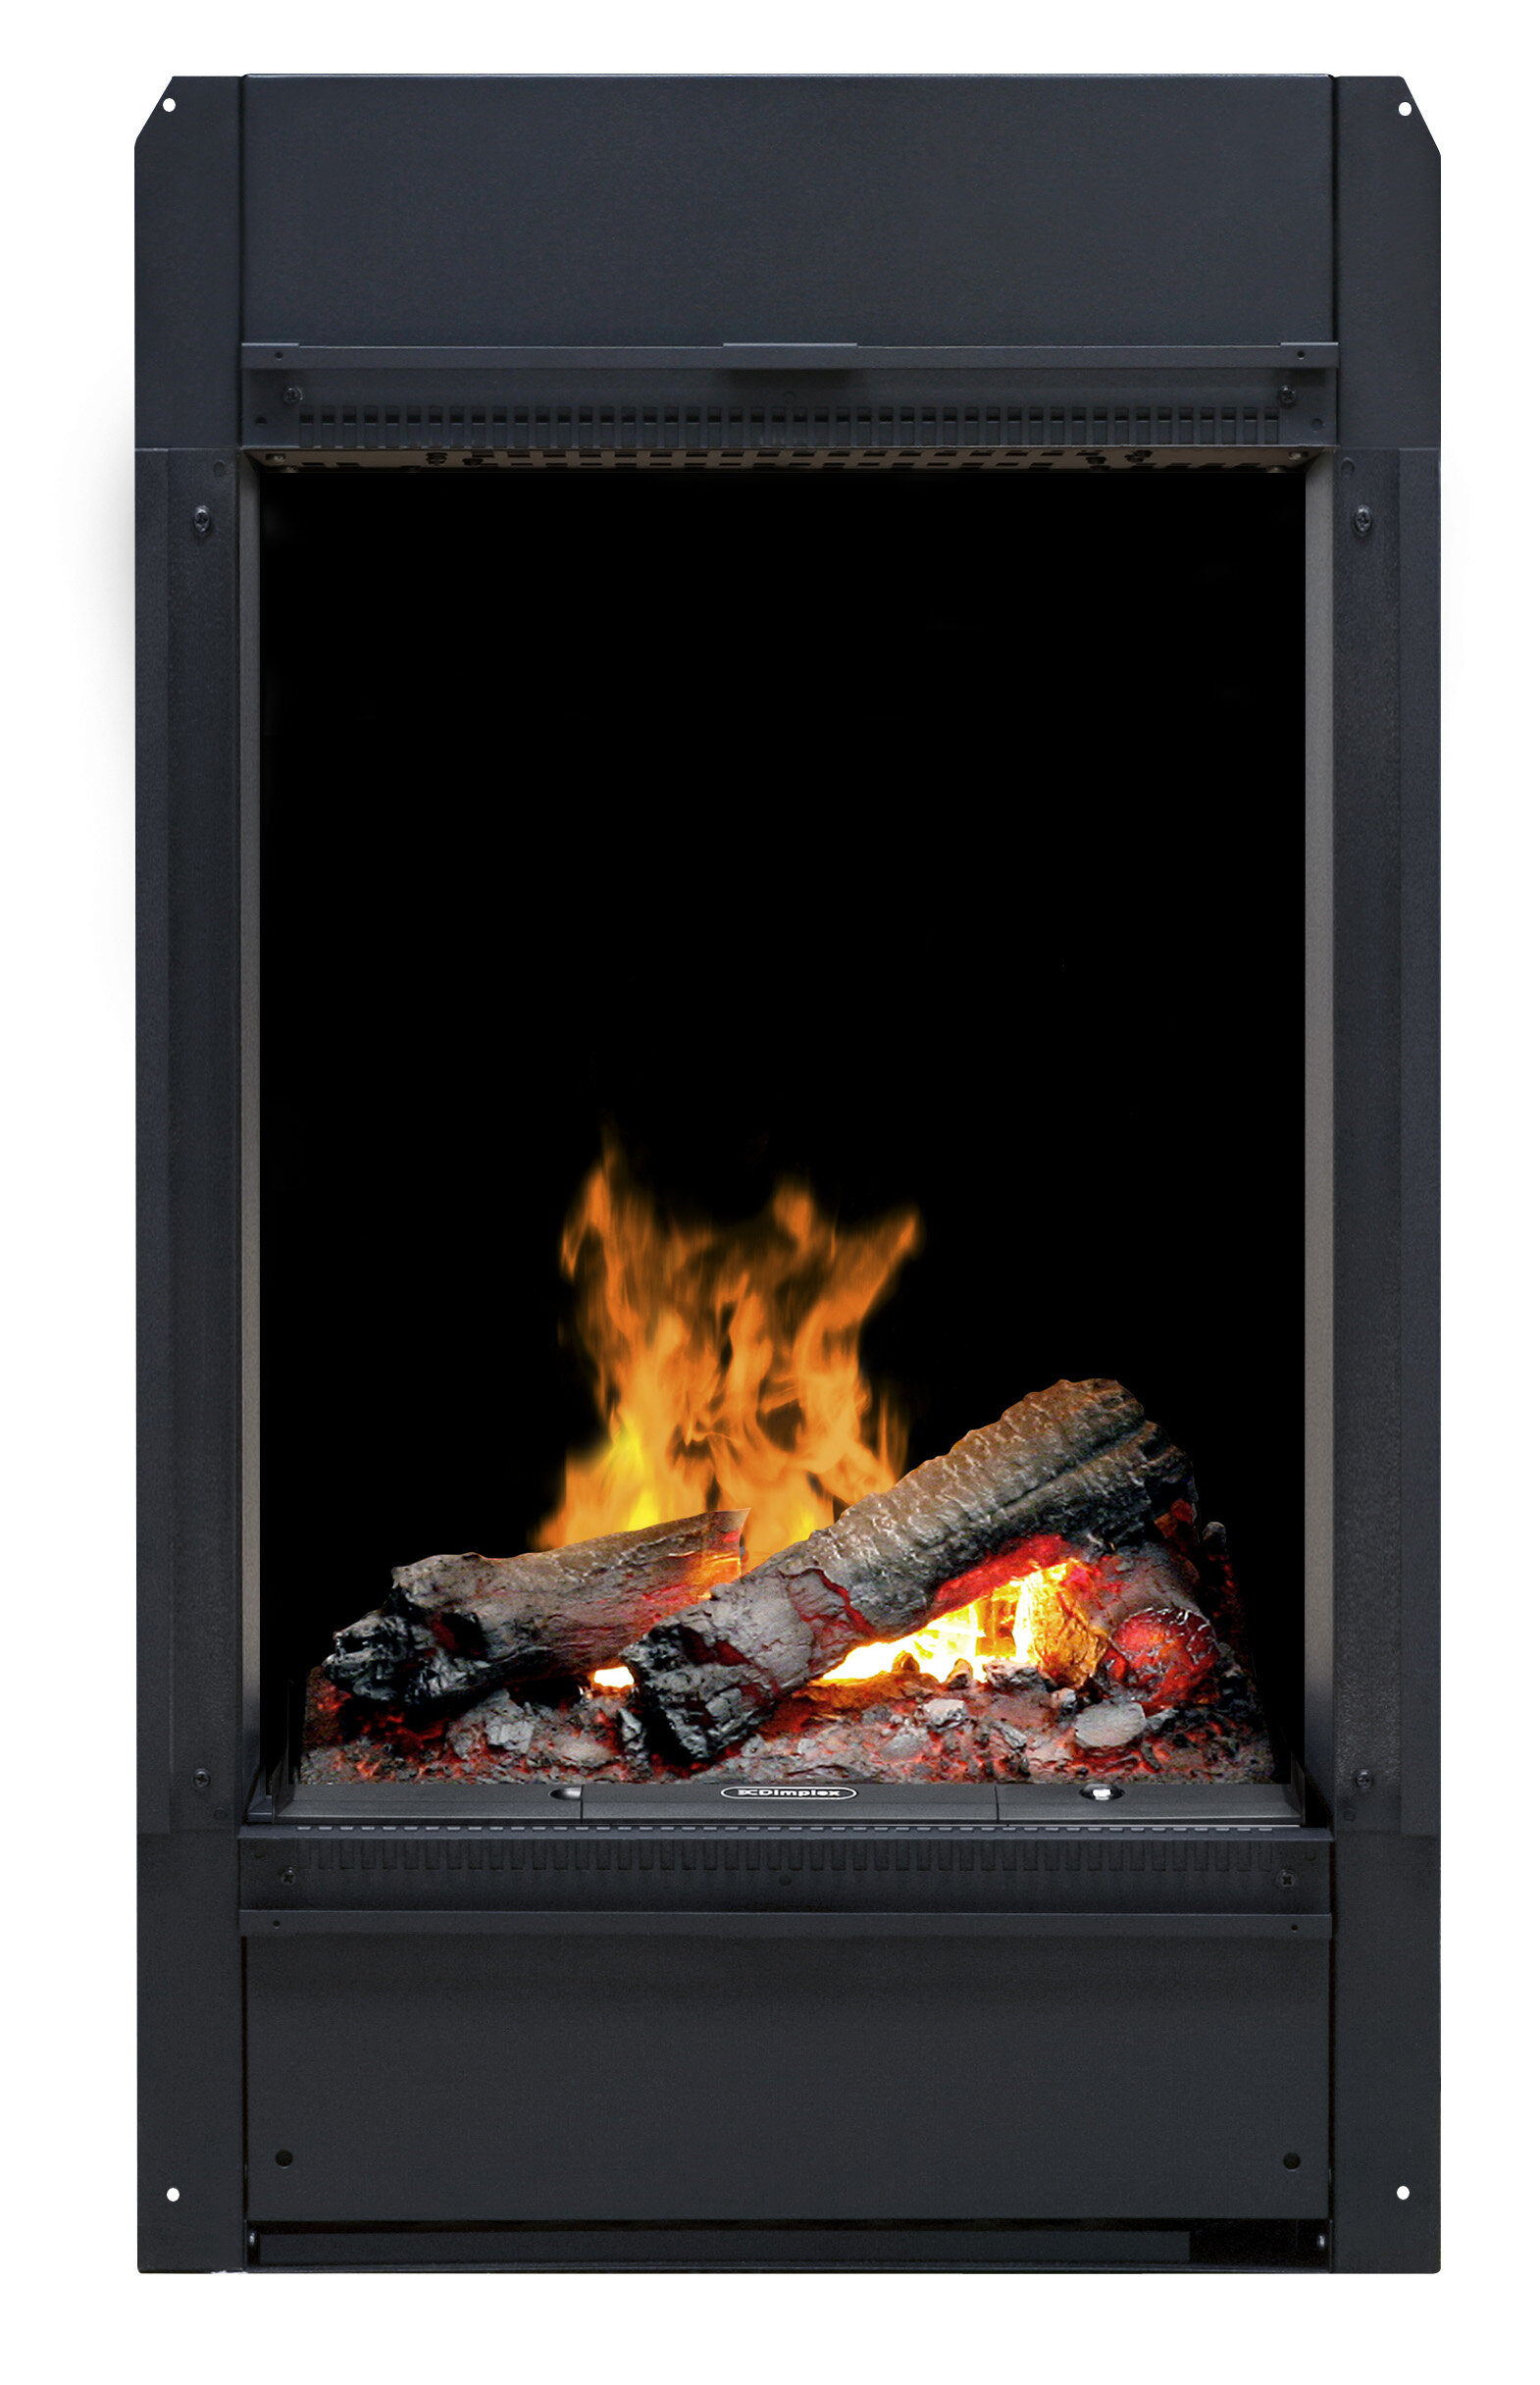 Charm Glow Electric Fireplace Luxury Hollingshead Pro Wall Mounted Electric Fireplace